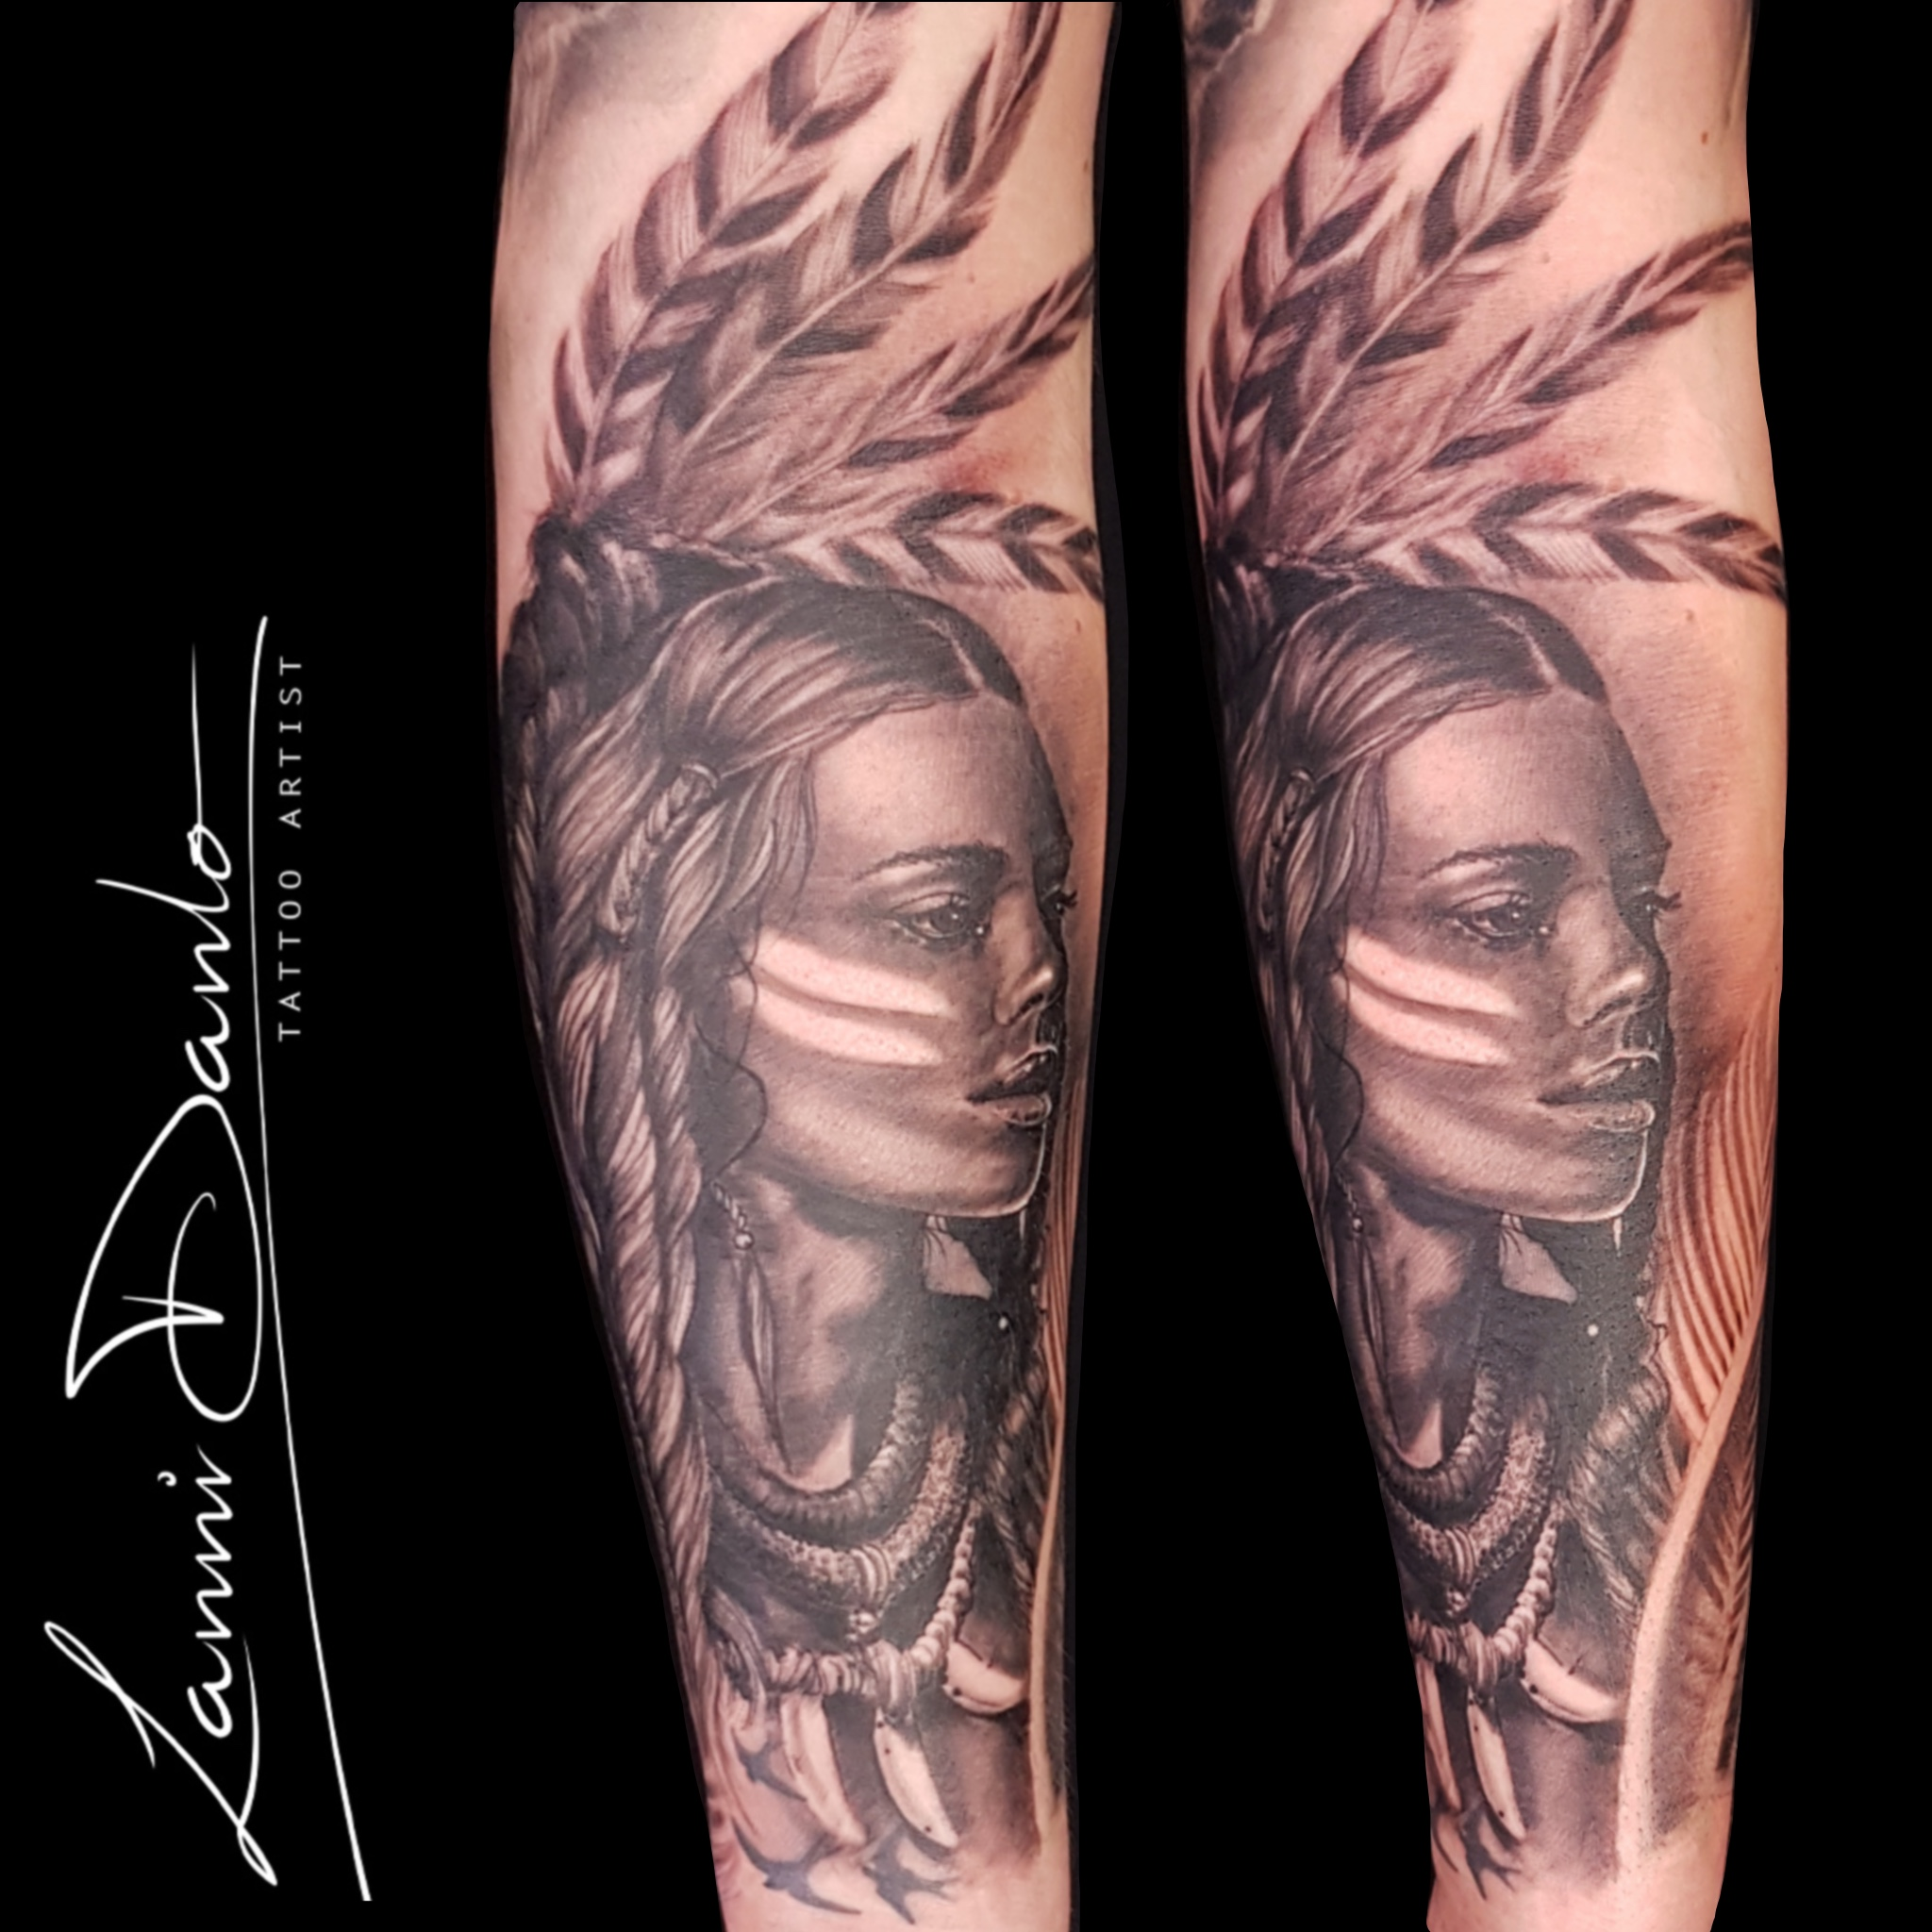 Treppe Tattoo Lee Anne Danlowsk Certified Artist